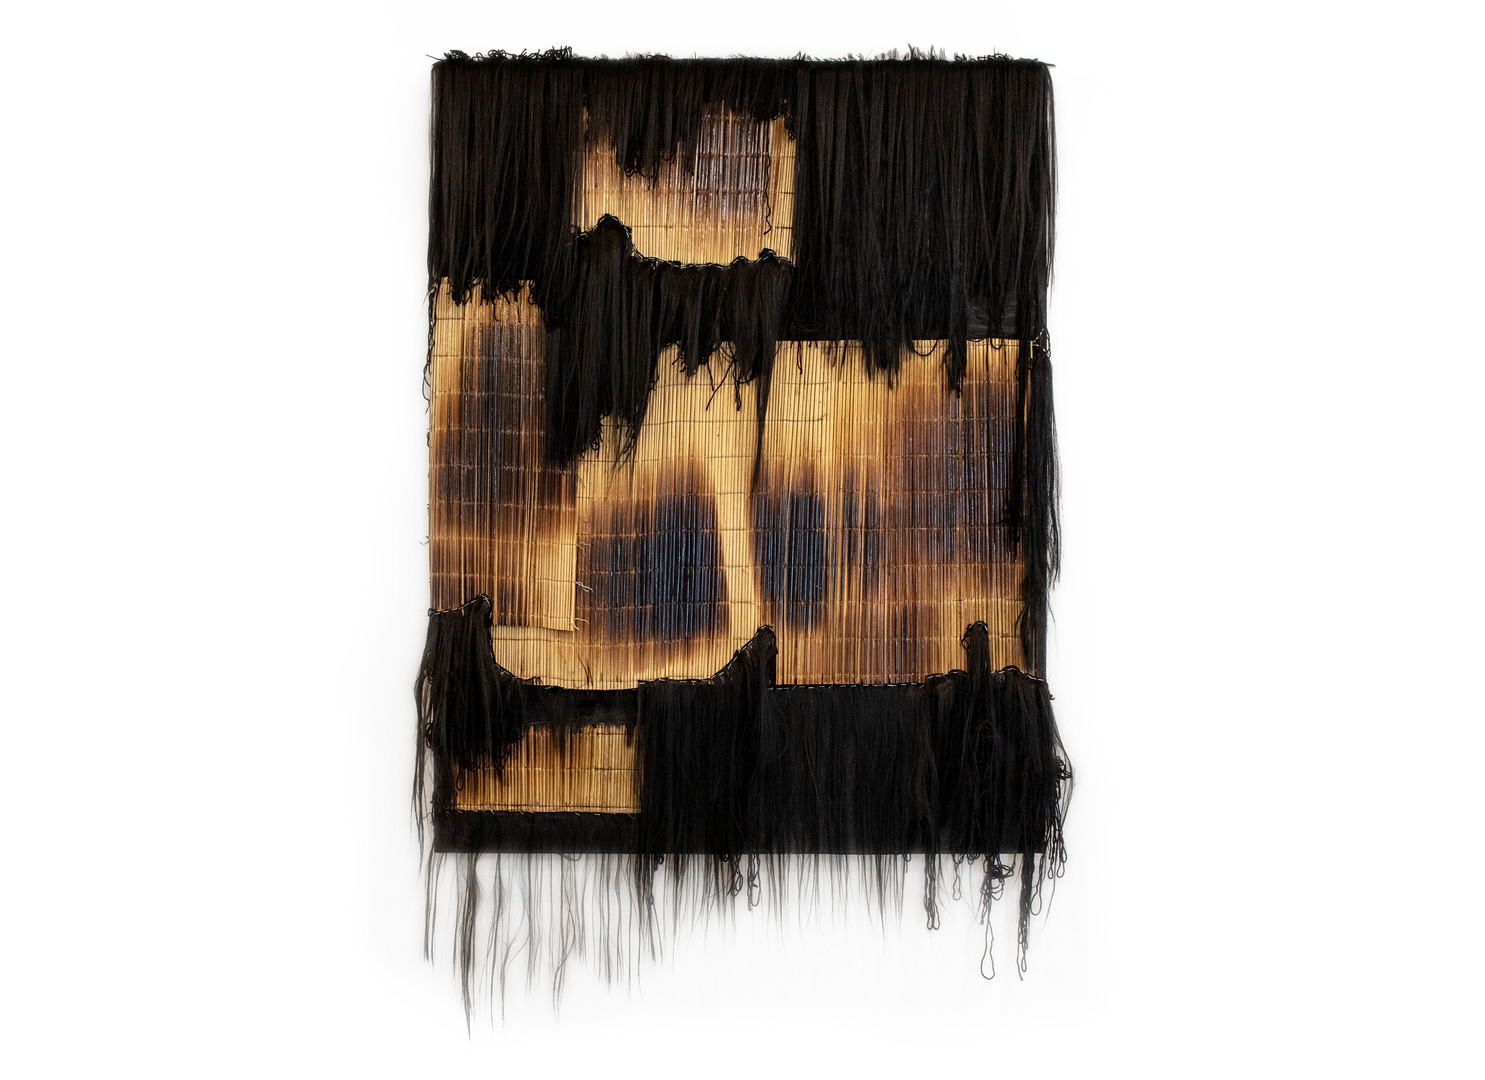 Simphiwe Buthelezi | Cries of Heresy | 2020 | Icansi, Artificial Hair and Wool on Canvas | 150 x 115 cm